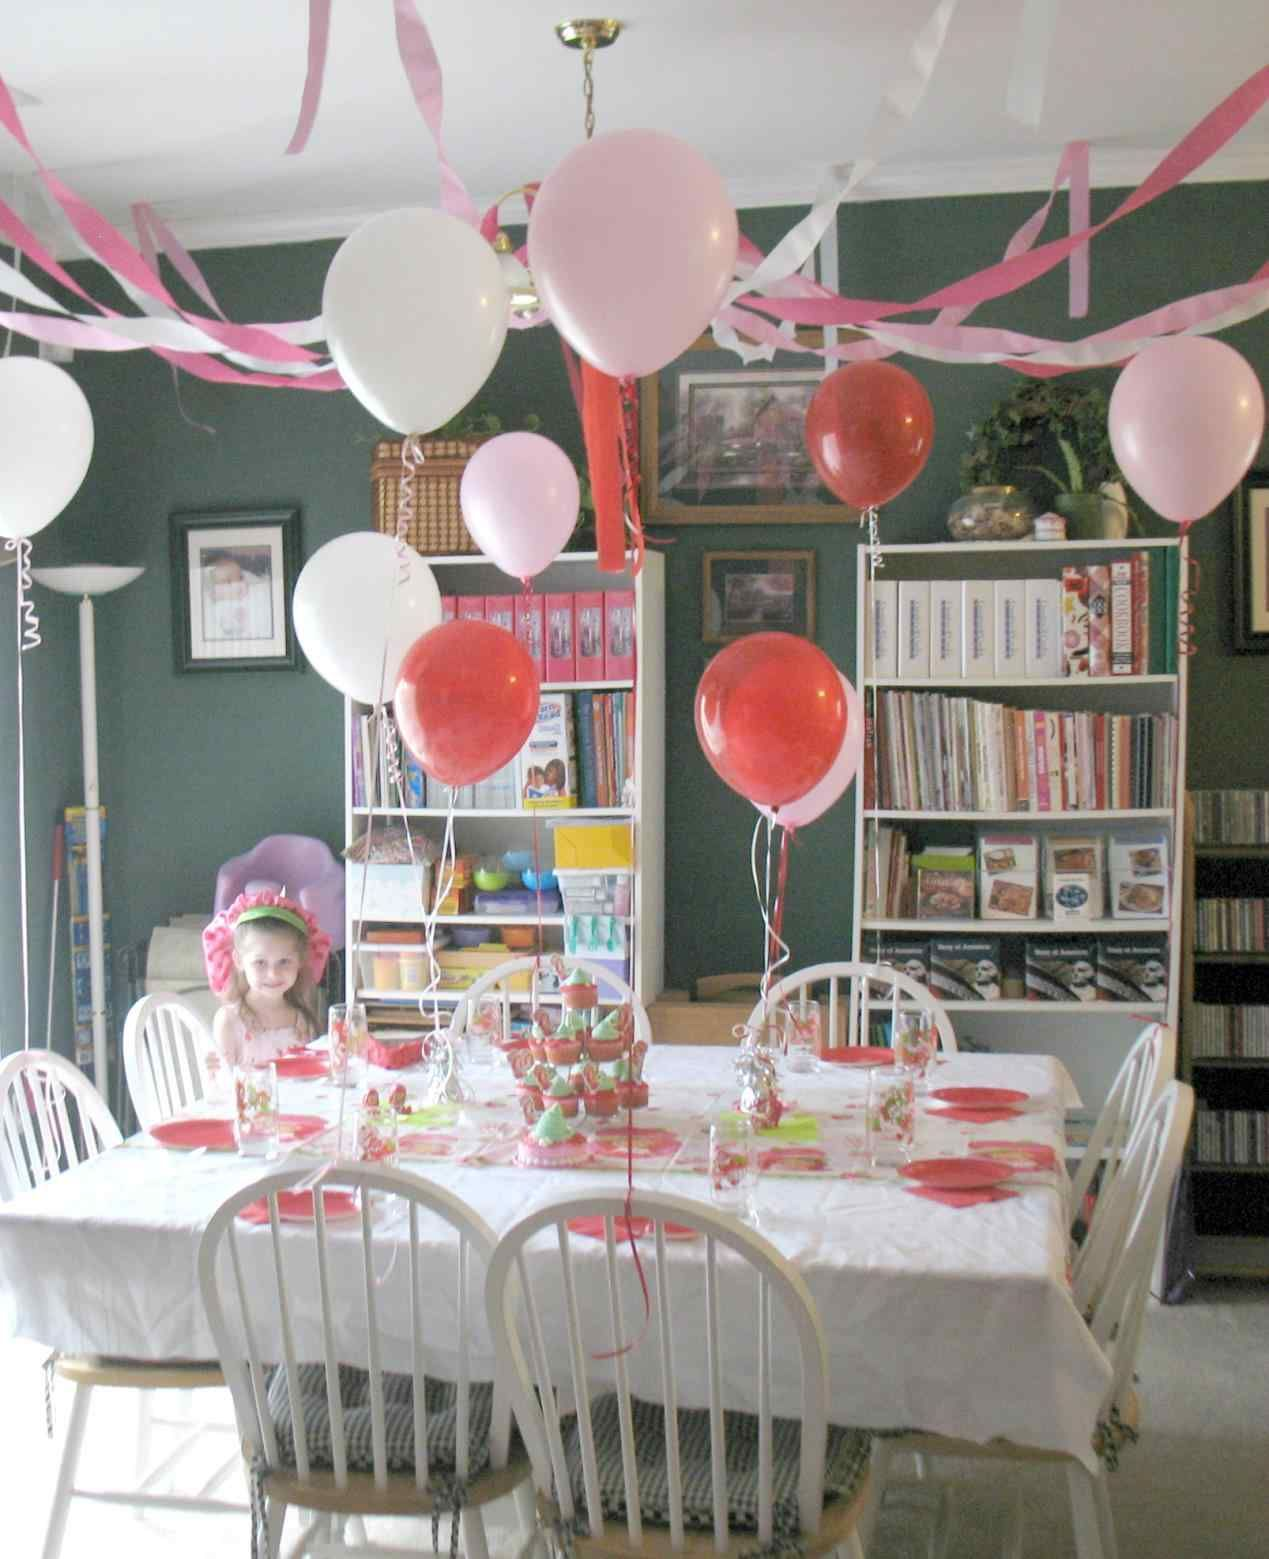 New post simple birthday decorations at home for girls has been